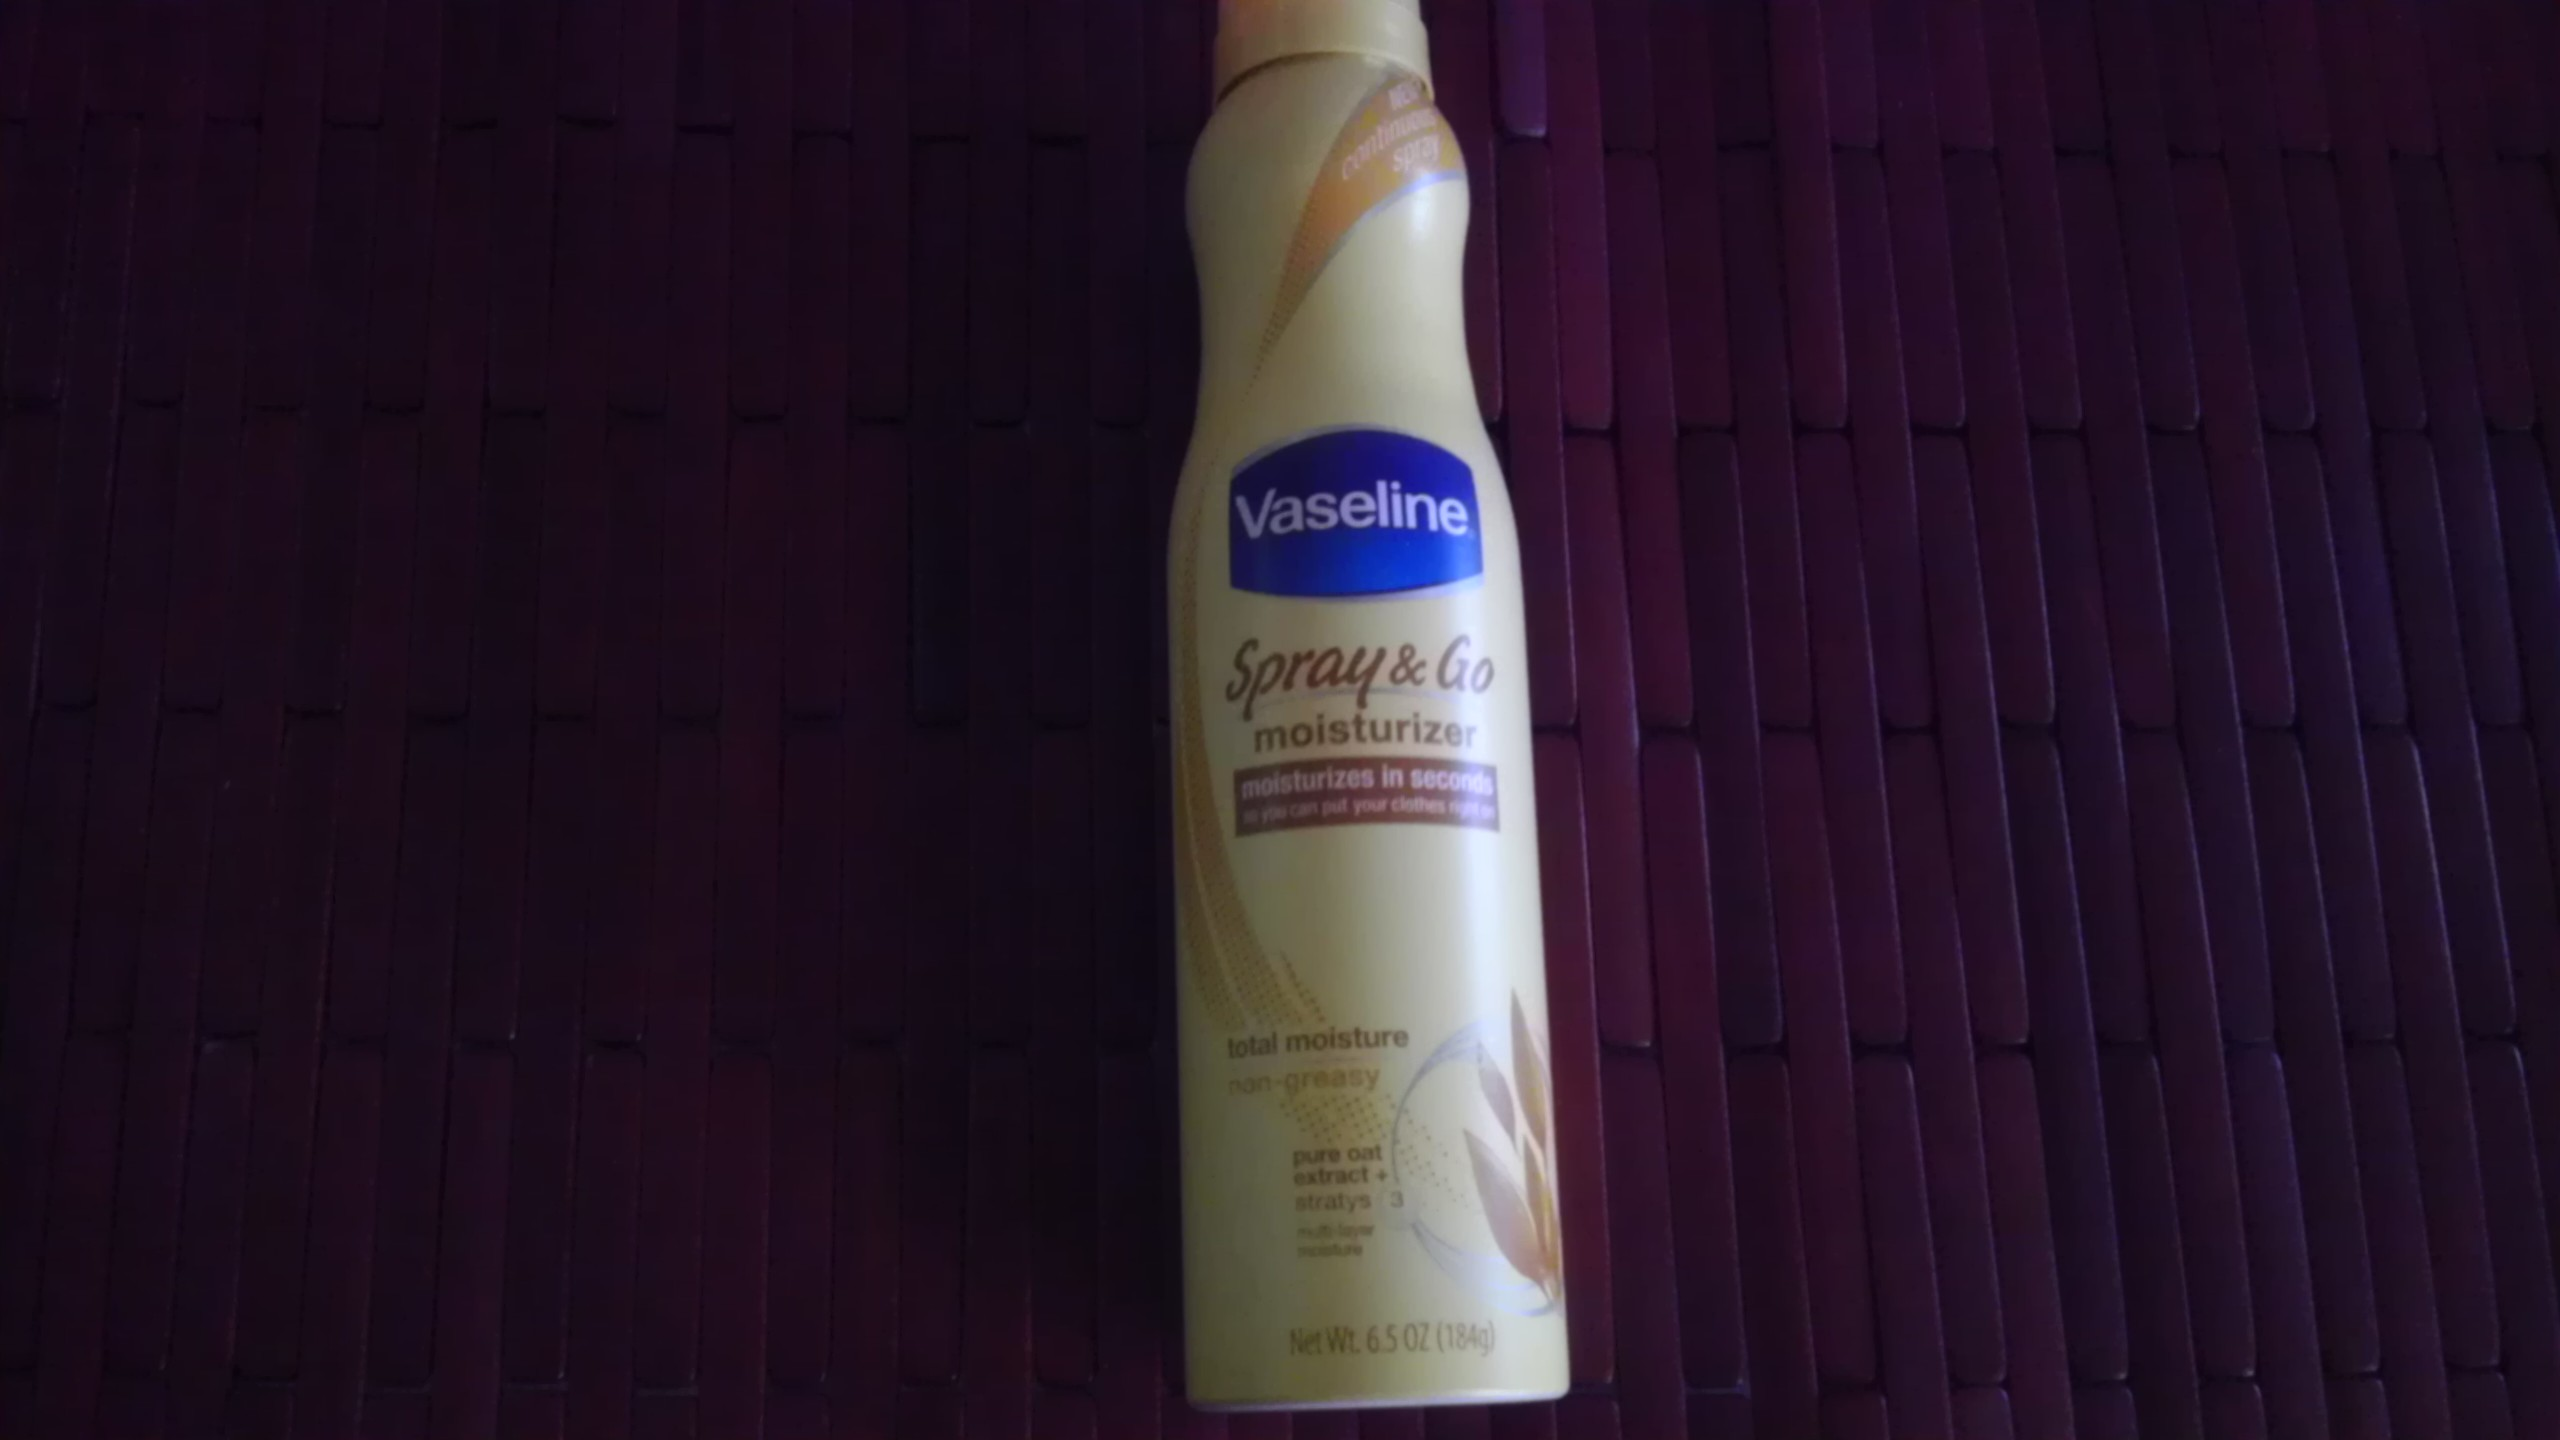 Vaseline. Influenster. Vox box. Spray Lotion.